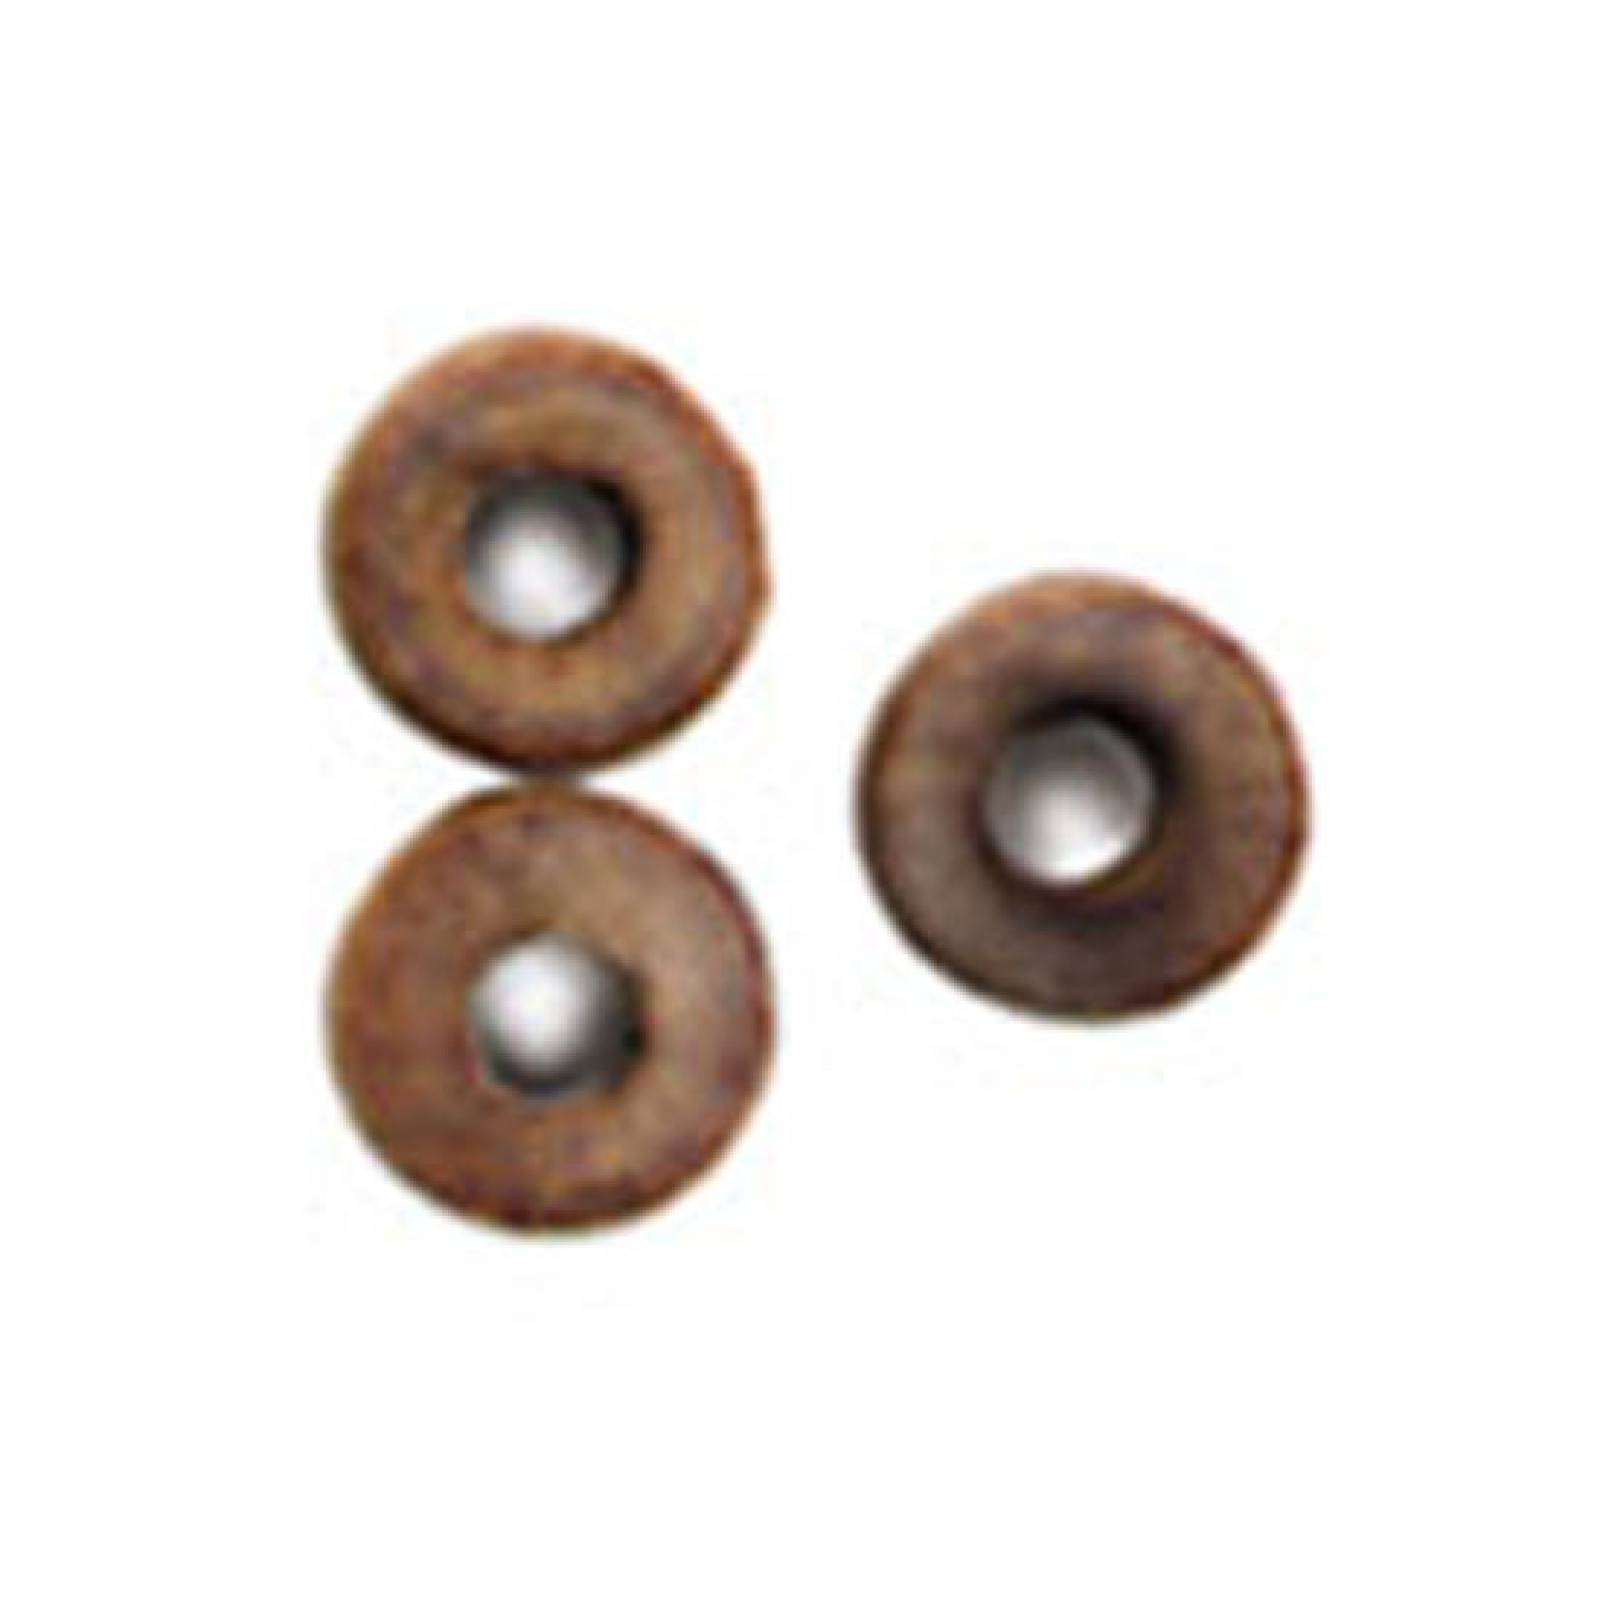 TRUCKS, WOOD CANNON WHEELS 3/16  (5MM) 1 5MM